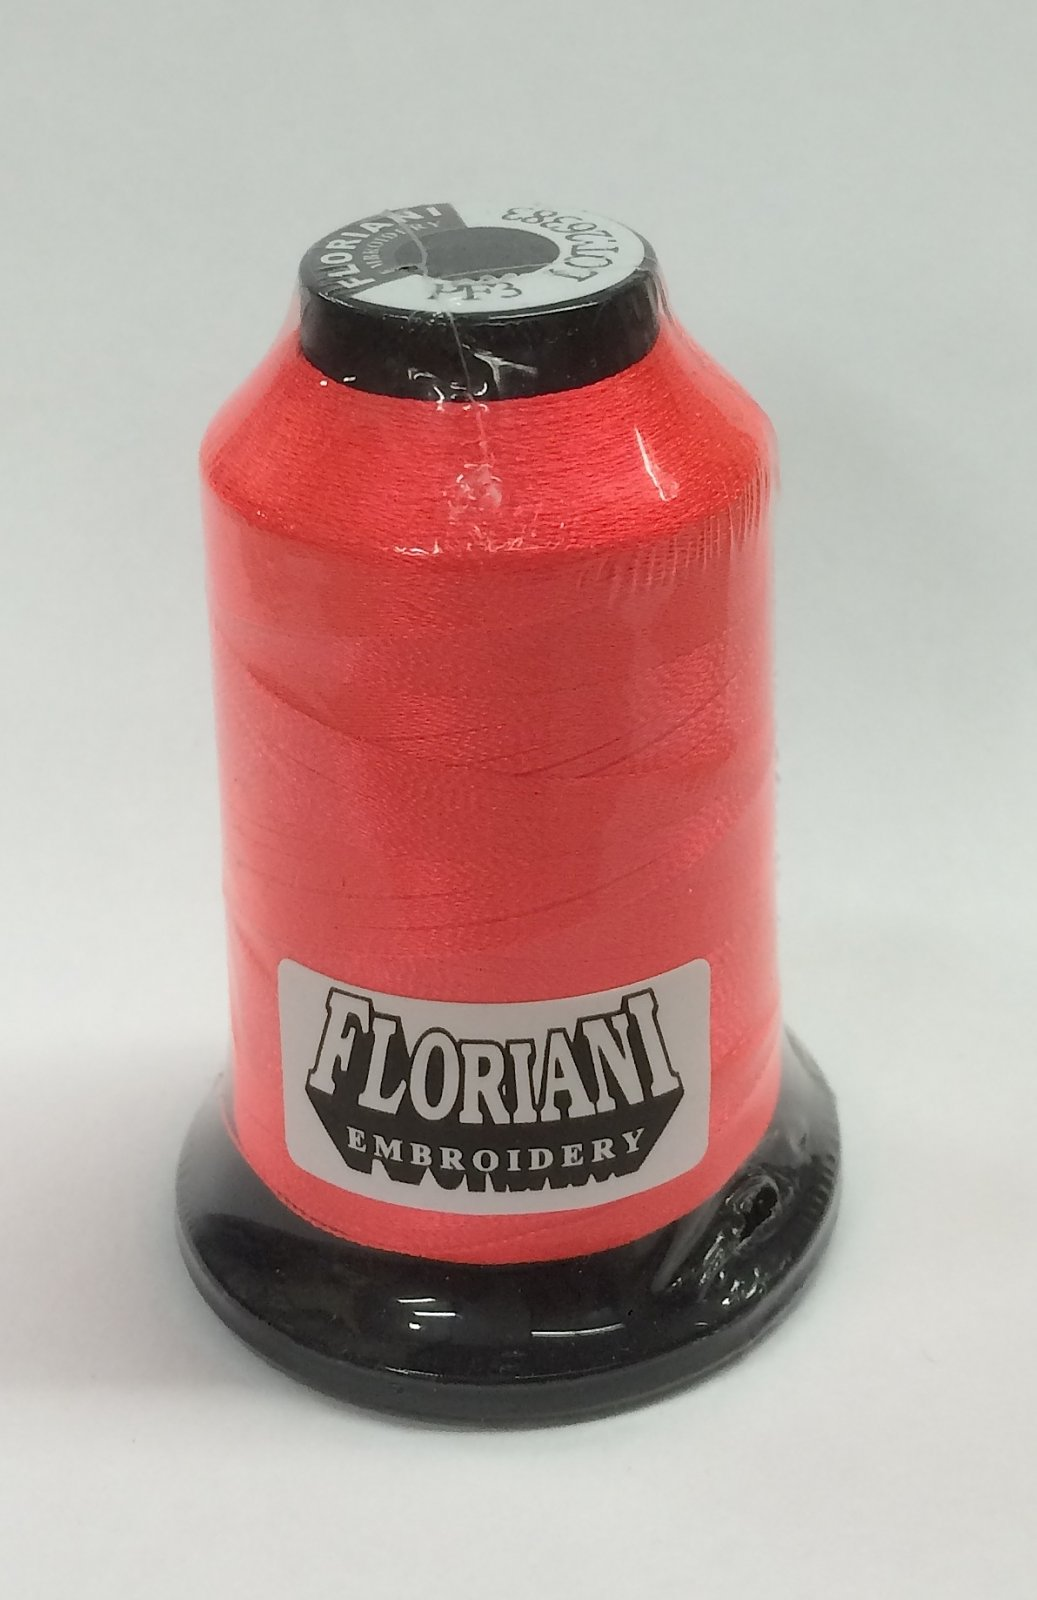 Floriani Embroidery Thread Color #0003